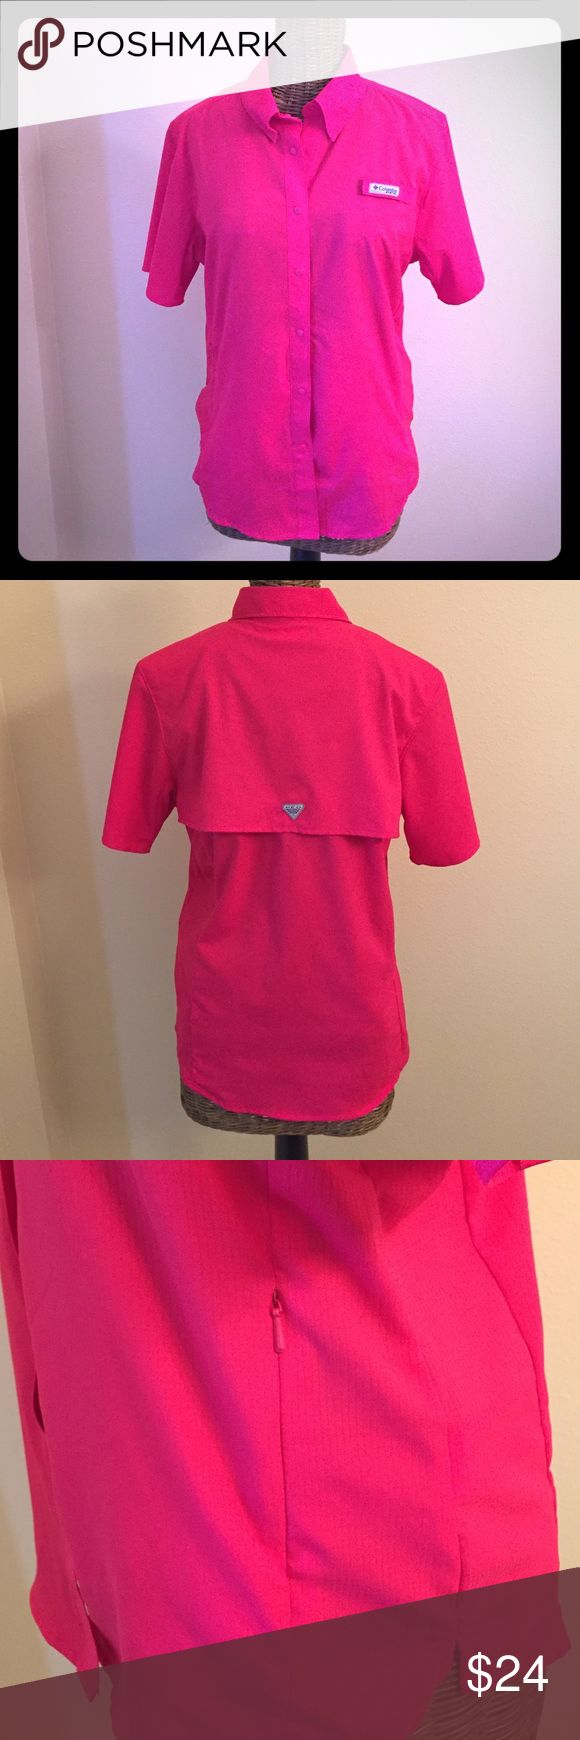 Columbia Sportswear PFG short sleeve shirt NWOT Columbia Sportswear PFG short sleeve shirt, NWOT, size small. Bright pink shirt features mesh lined ventilation at center back and Omni Shade UPF 40.  Snap buttons down front, side zip pockets, Velcro holding collar down. New without tags. Columbia Tops